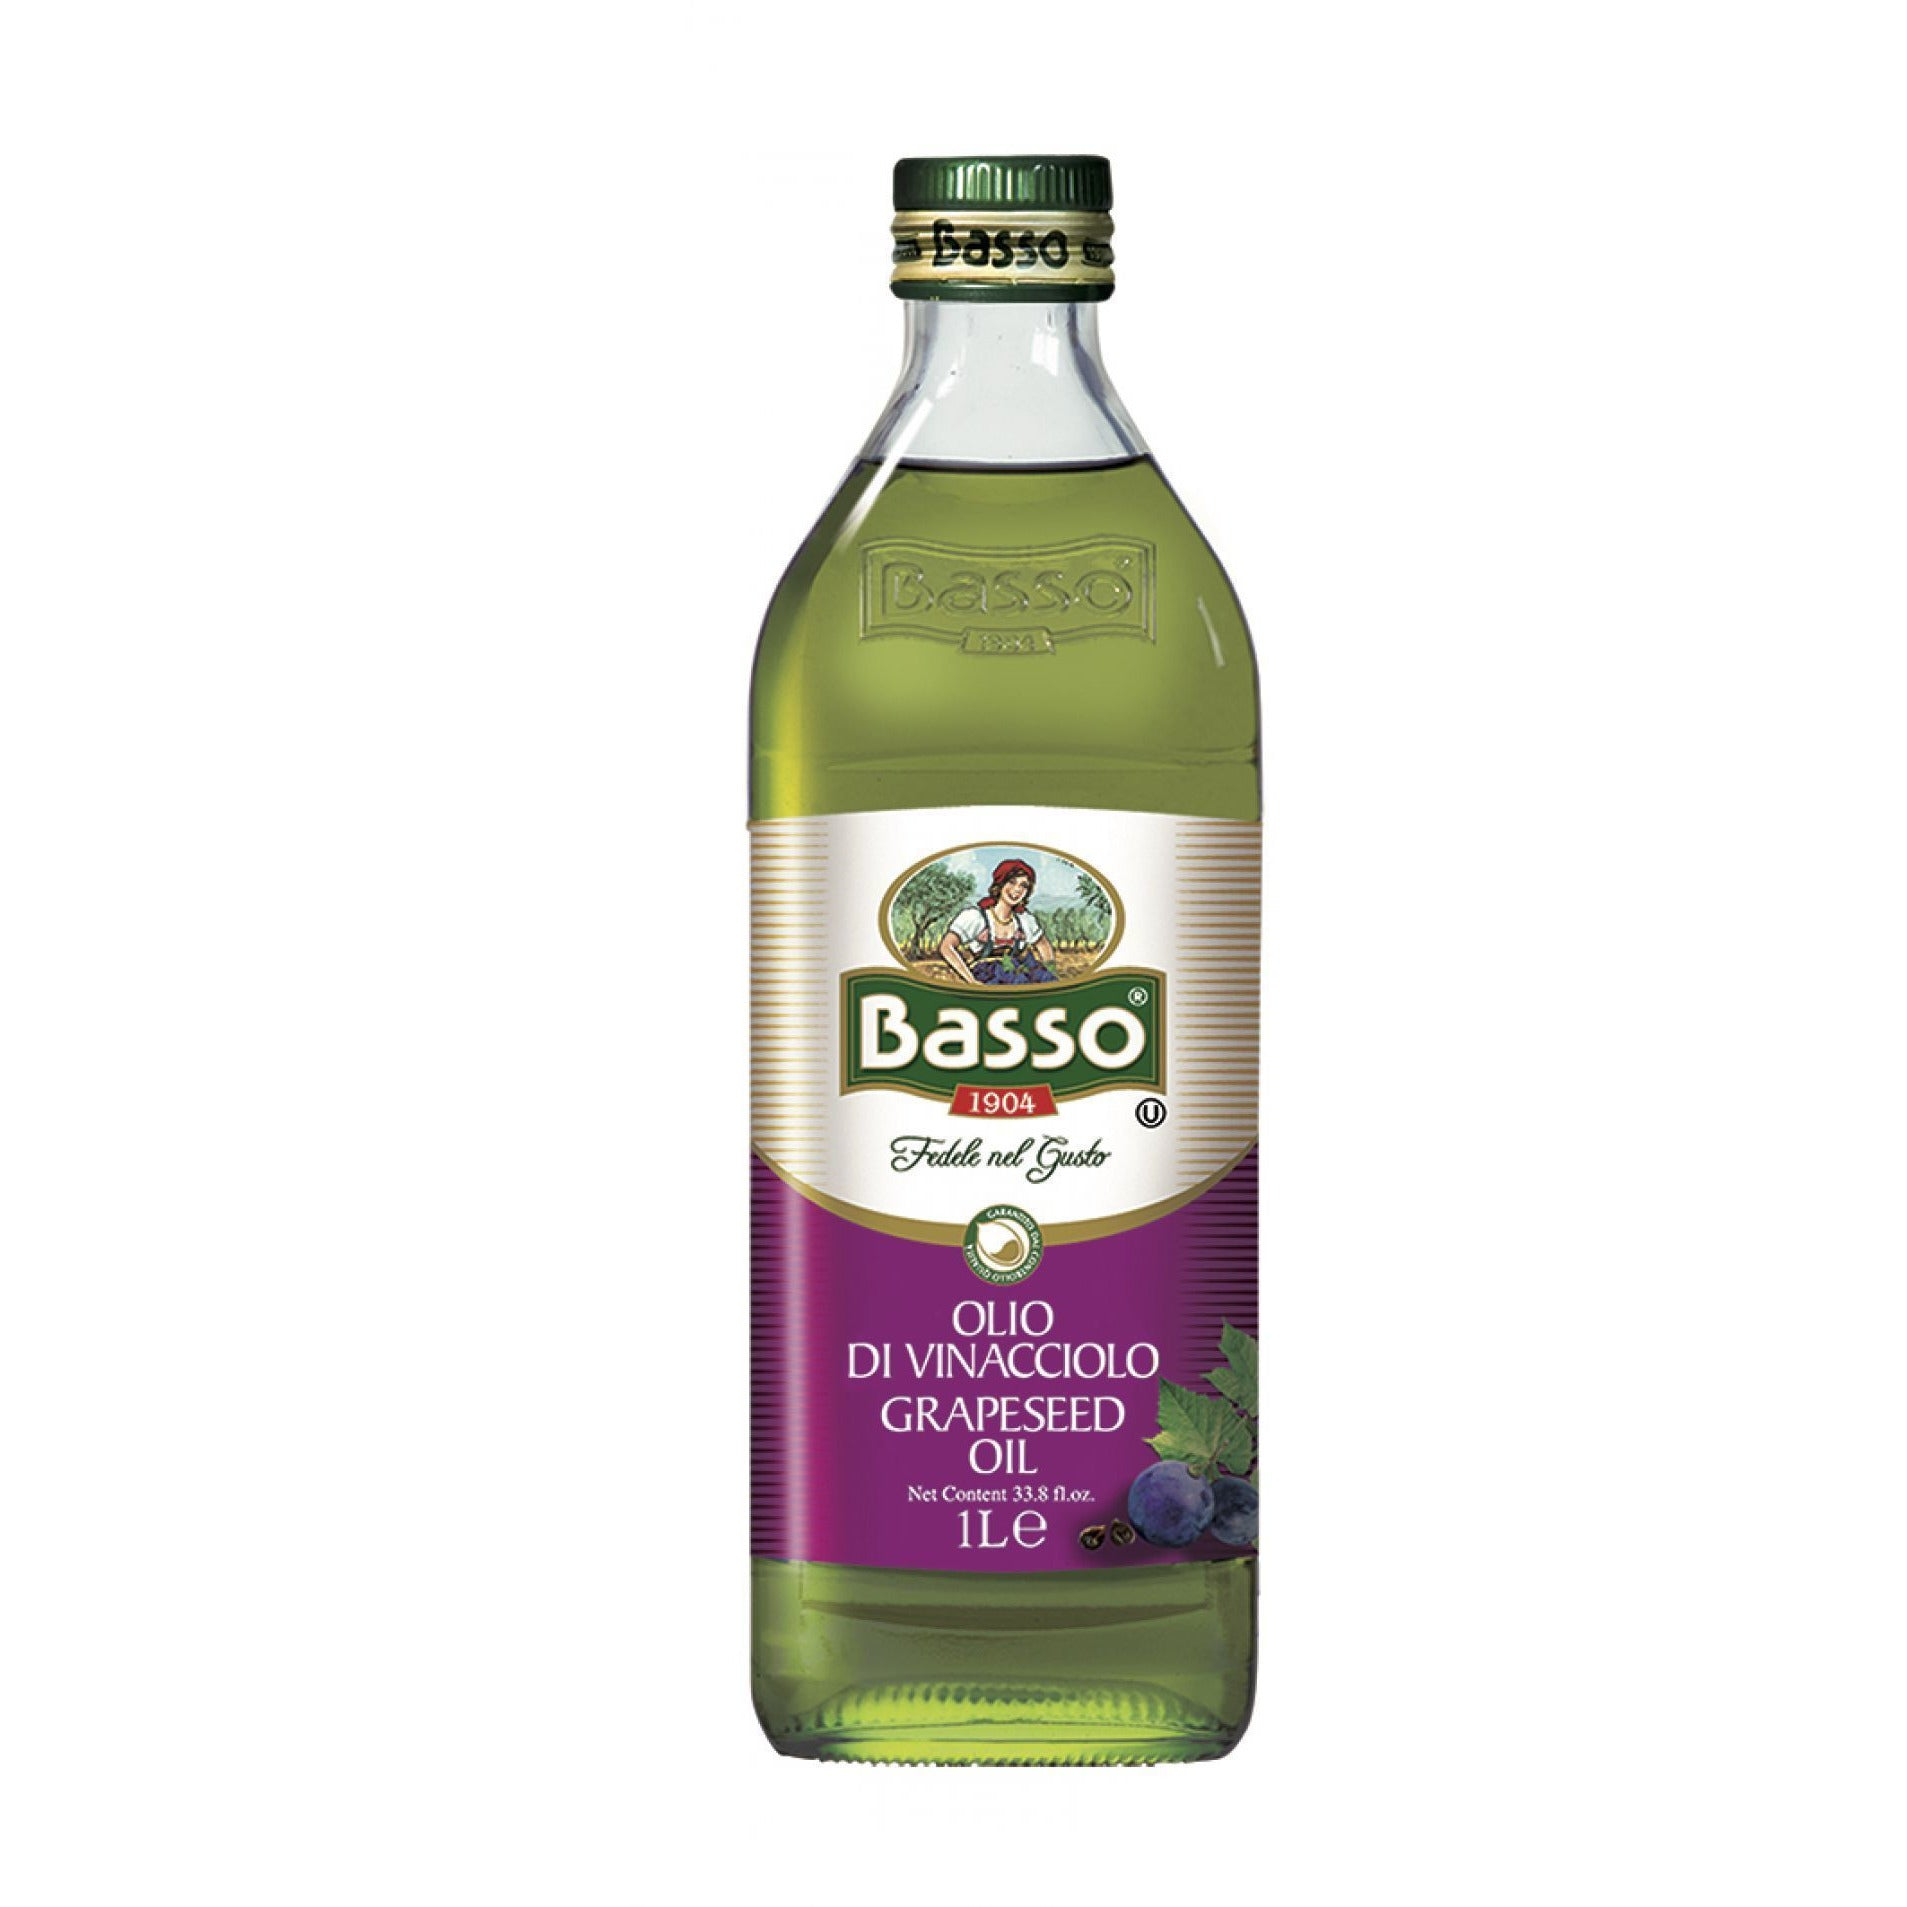 Basso Grapeseed Oil